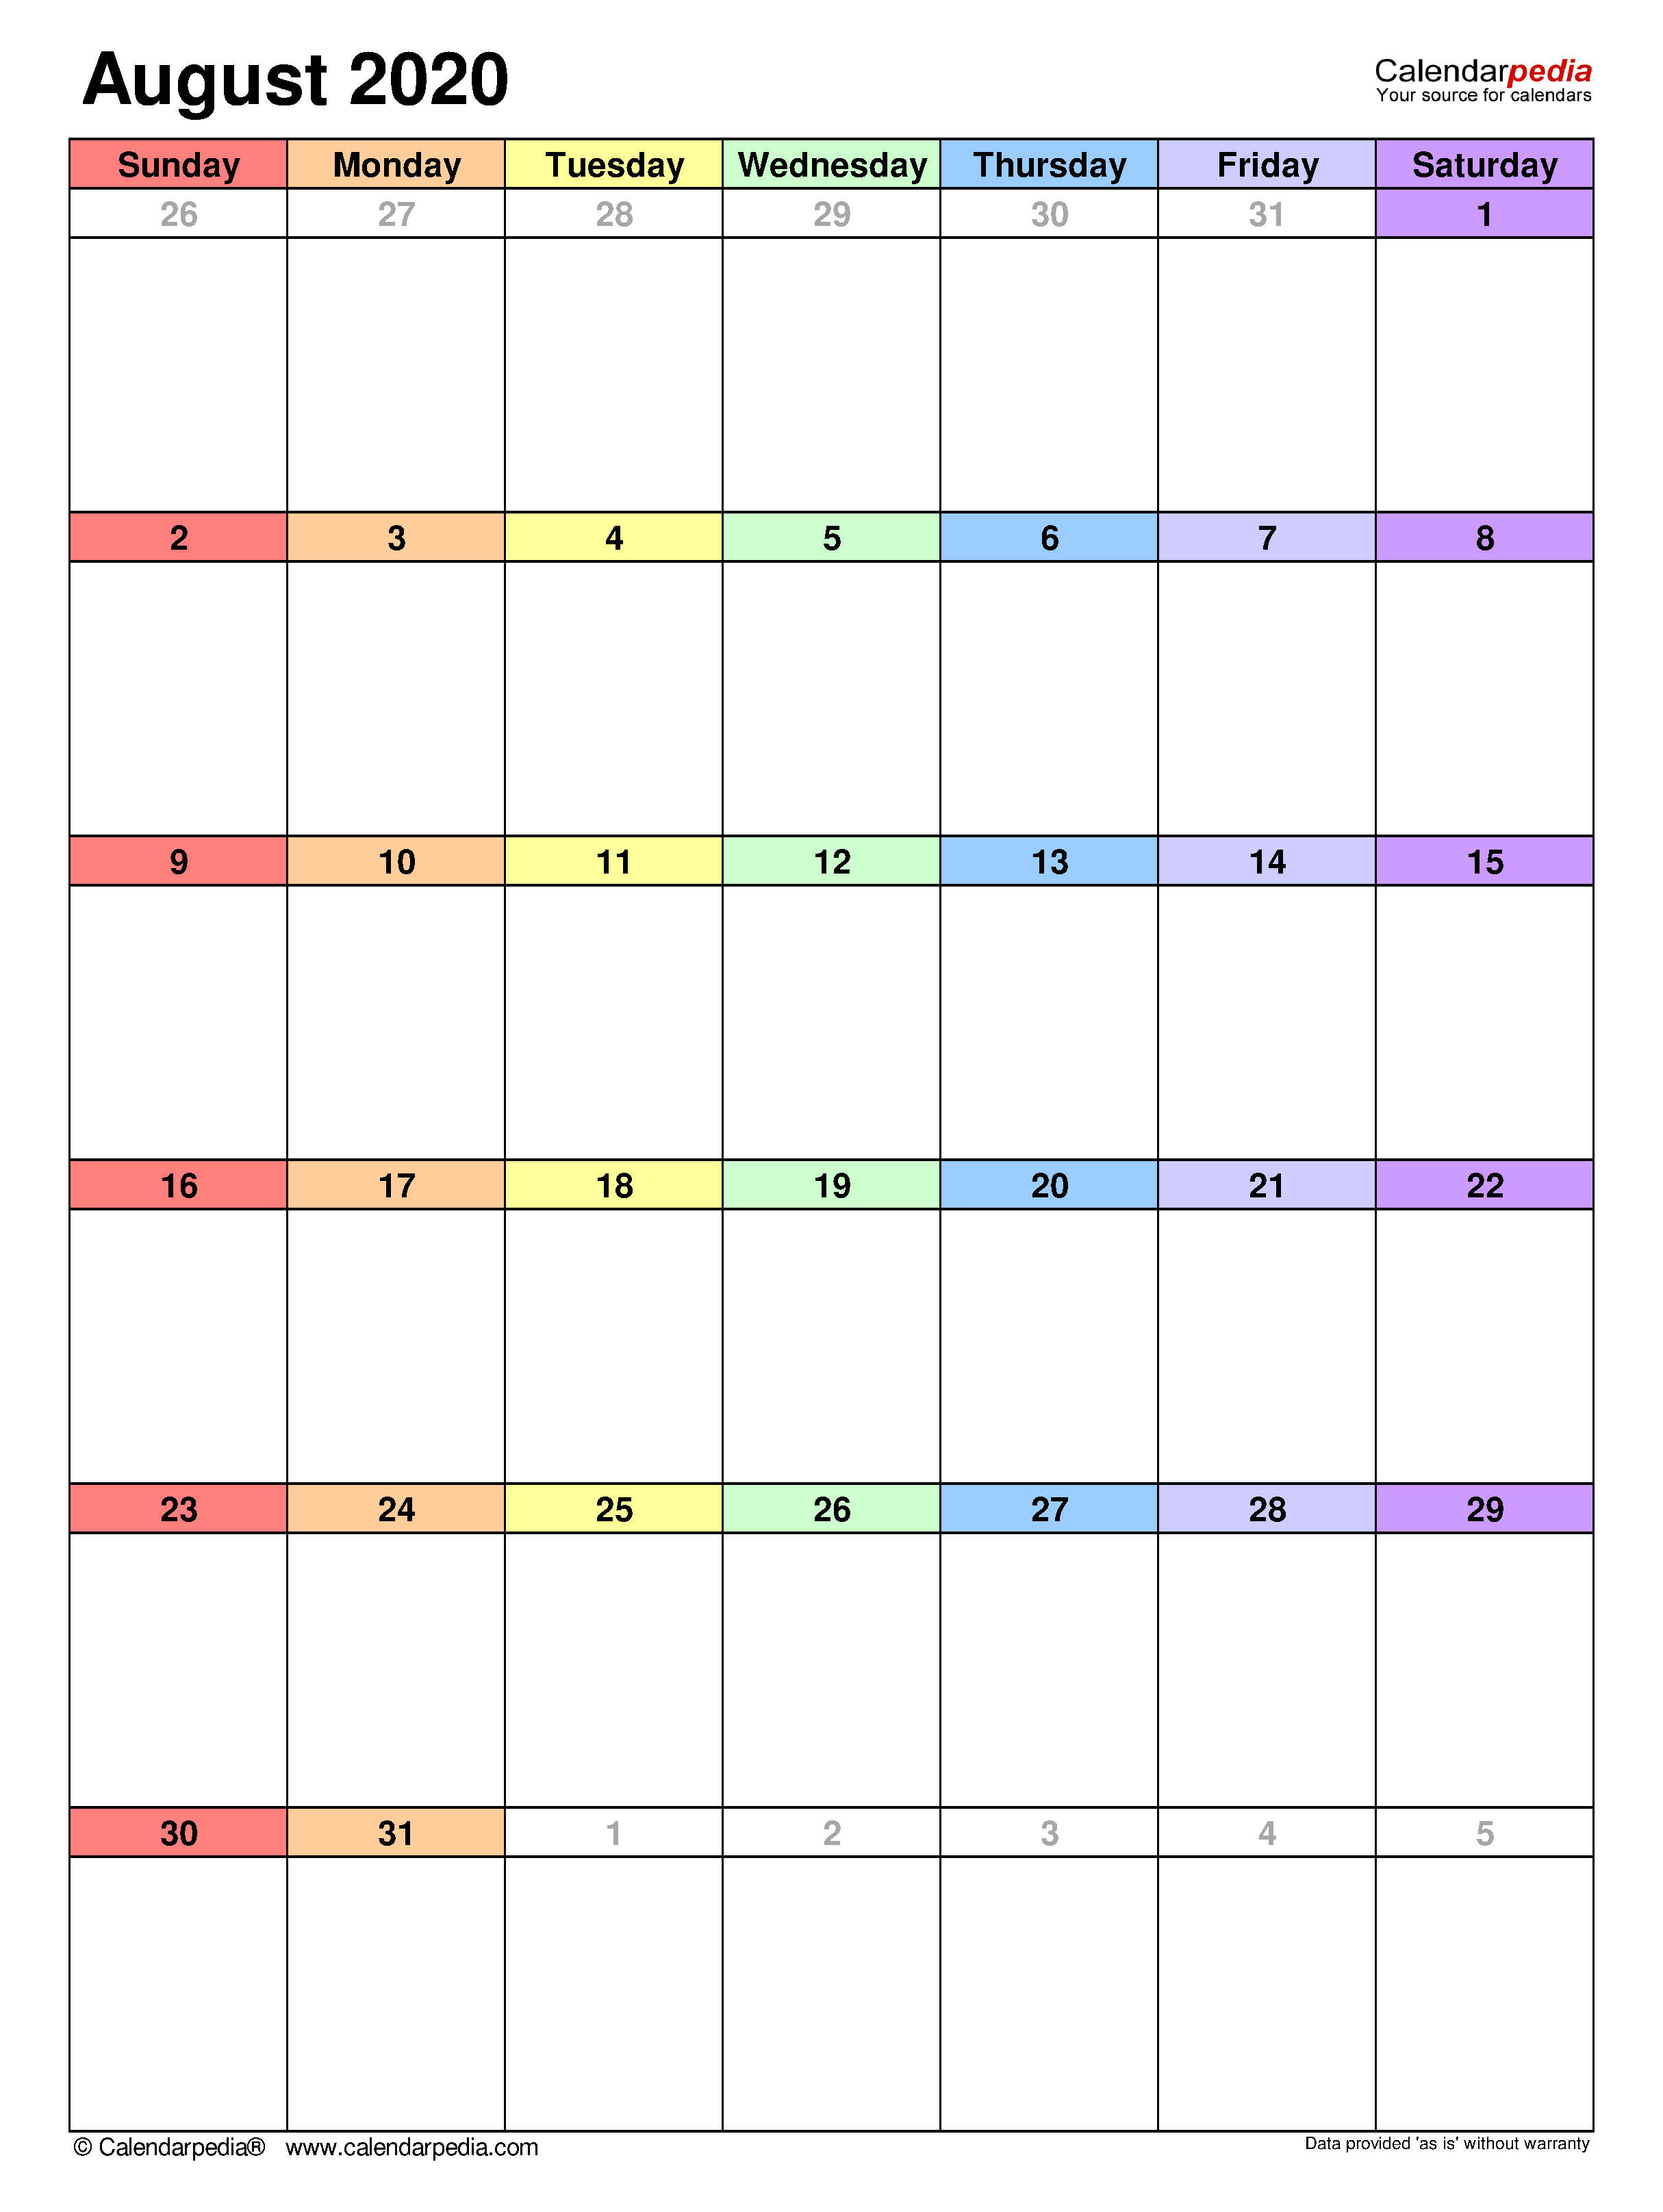 August 2020 - Calendar Templates For Word, Excel And Pdf for 2020 Calendar To Fill In